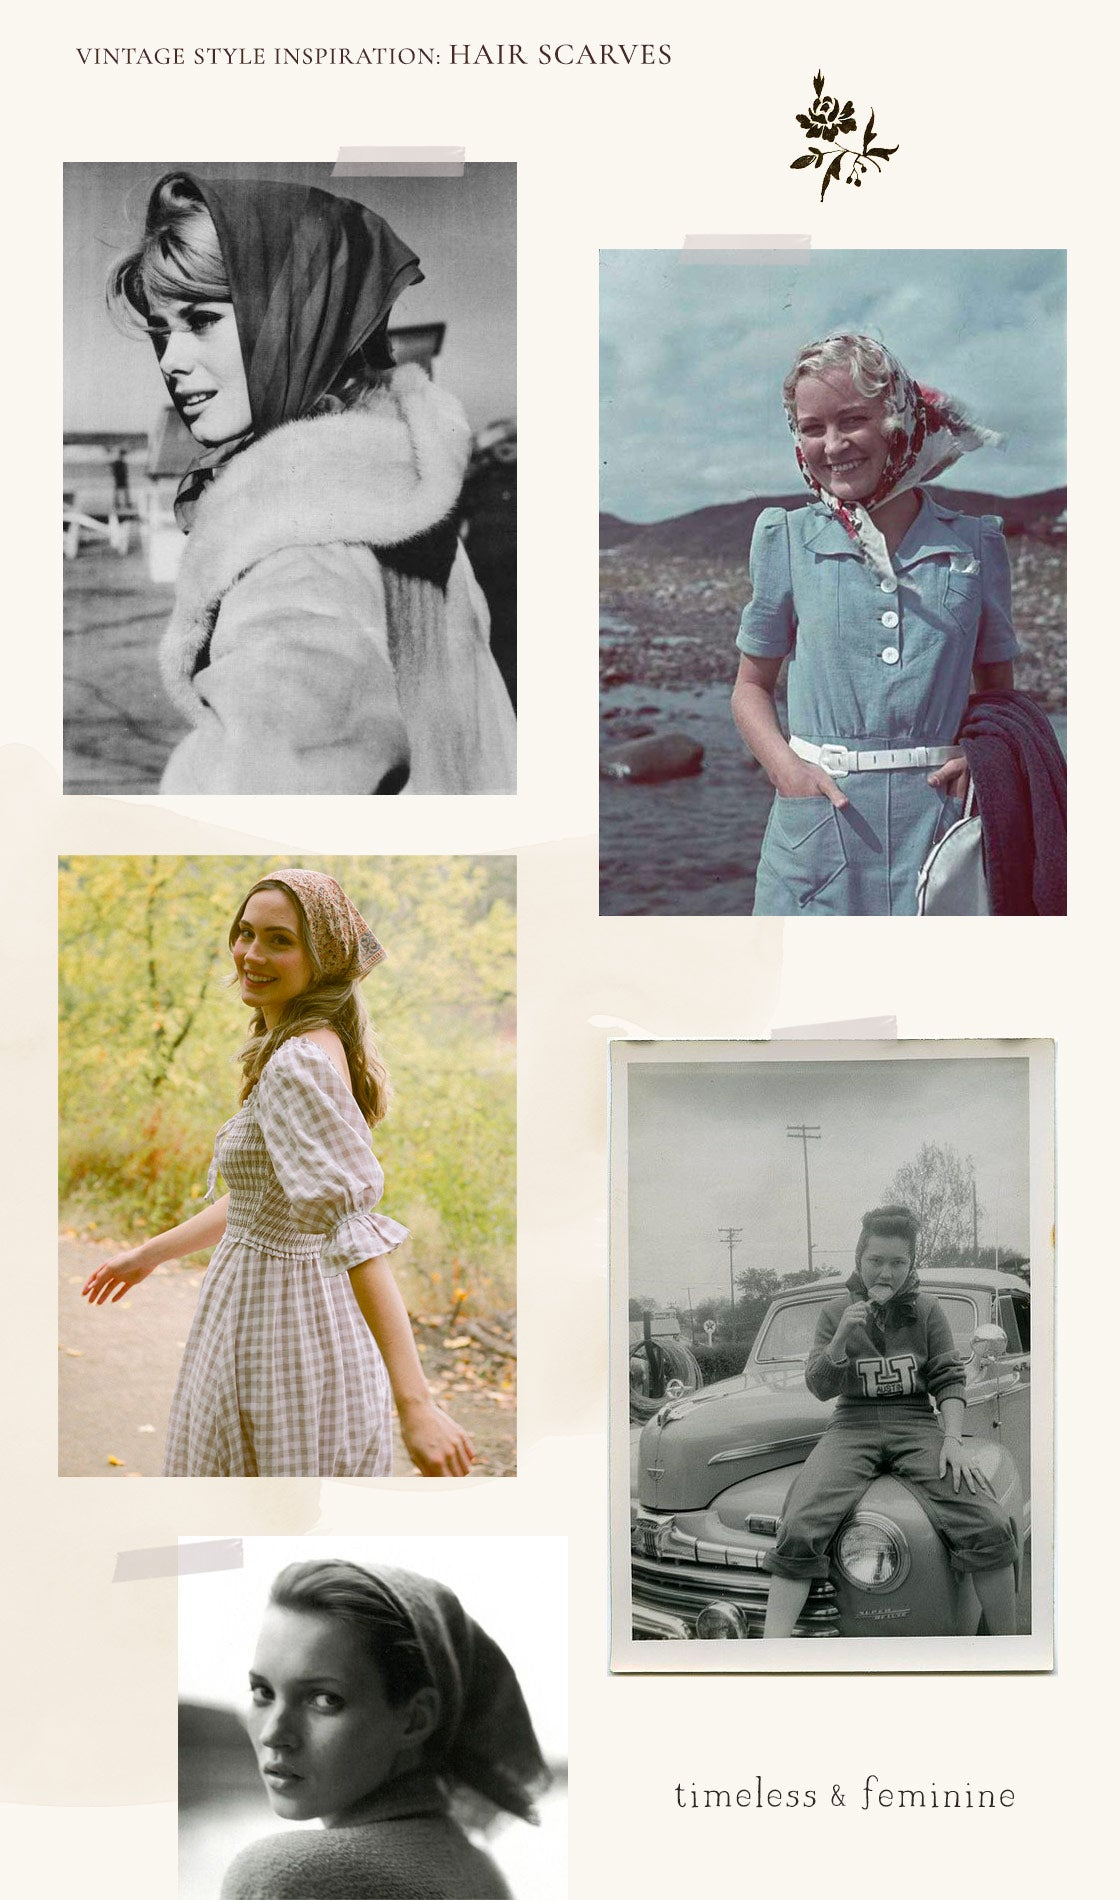 Vintage Style Inspiration: How to wear a hair scarf